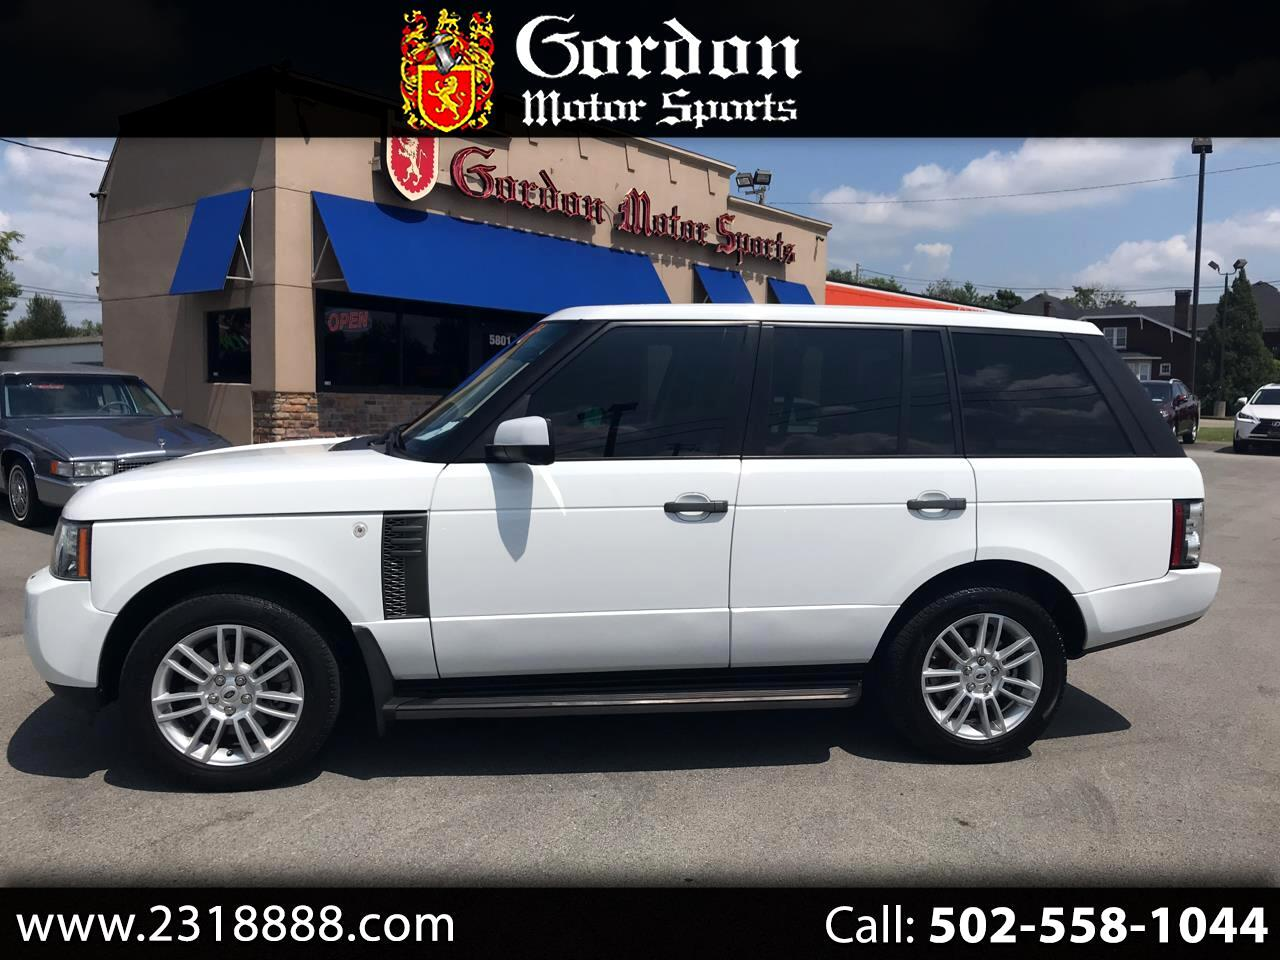 Land Rover Louisville >> Used 2011 Land Rover Range Rover For Sale In Louisville Ky 40291